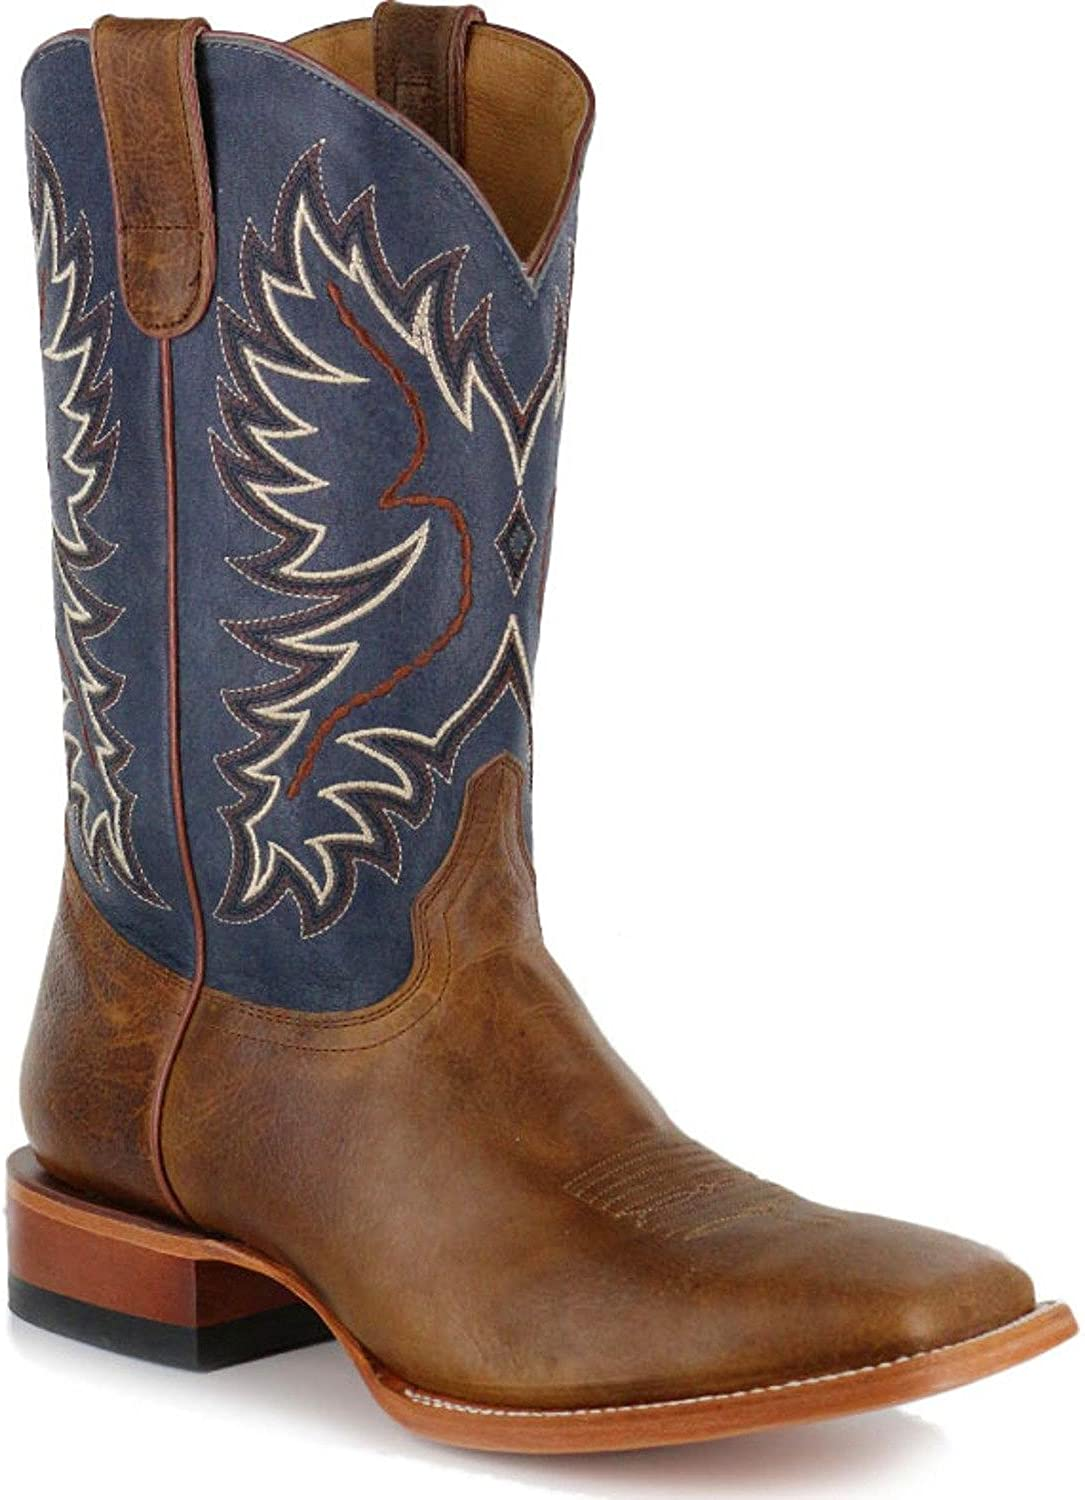 Cody James Men's Montana Western Boot Toe Bbm164 Wide Branded goods Square - Ranking TOP10